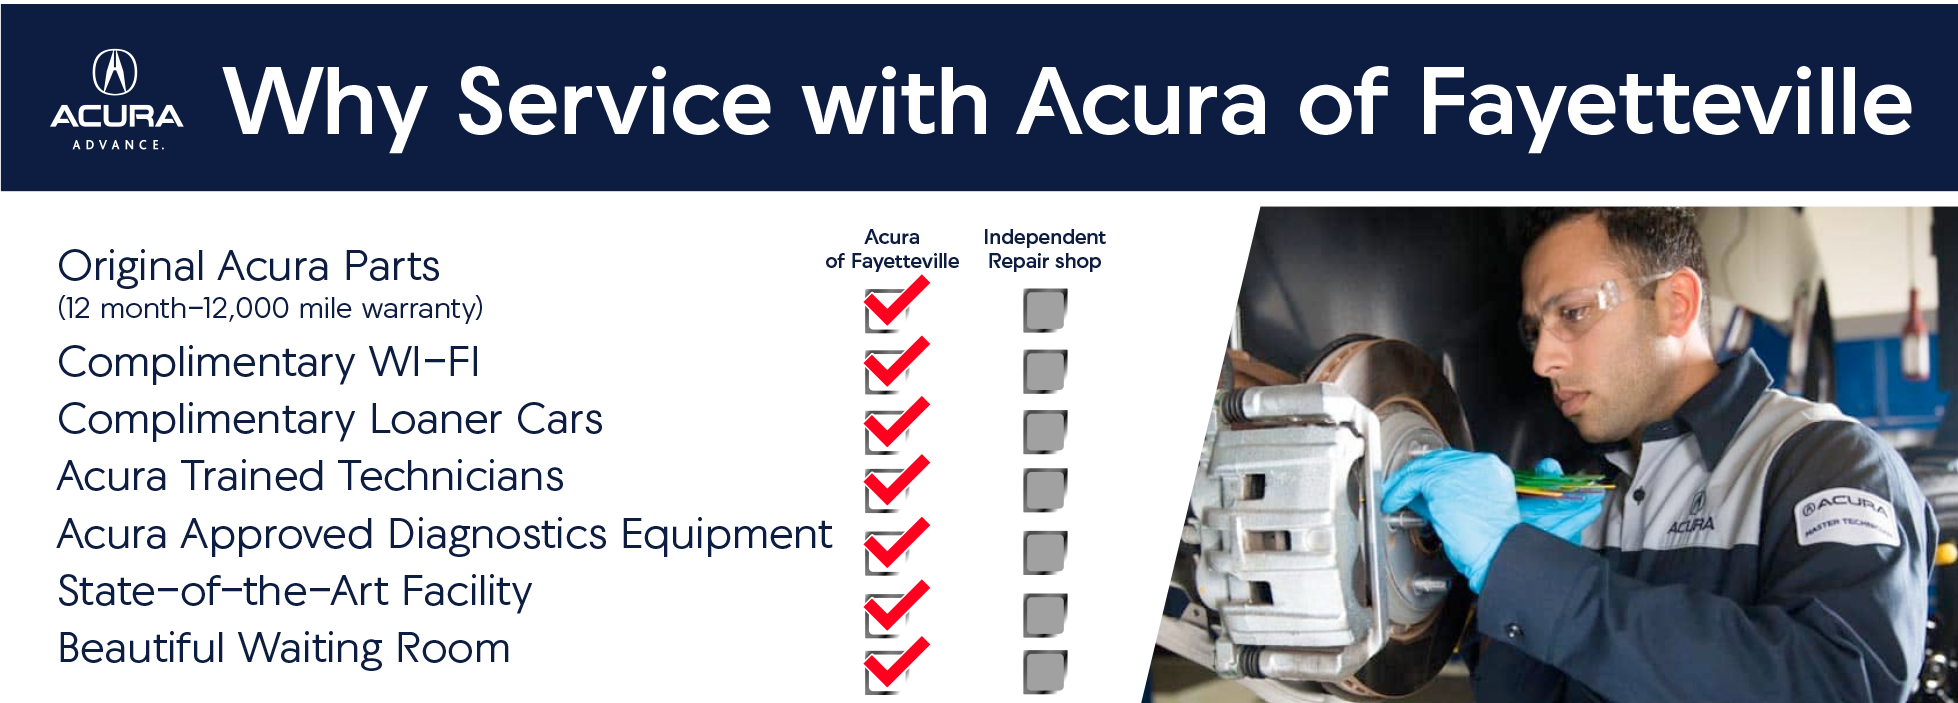 Get quality Acura Service at Independent Repair Shop prices at Acura of Fayetteville